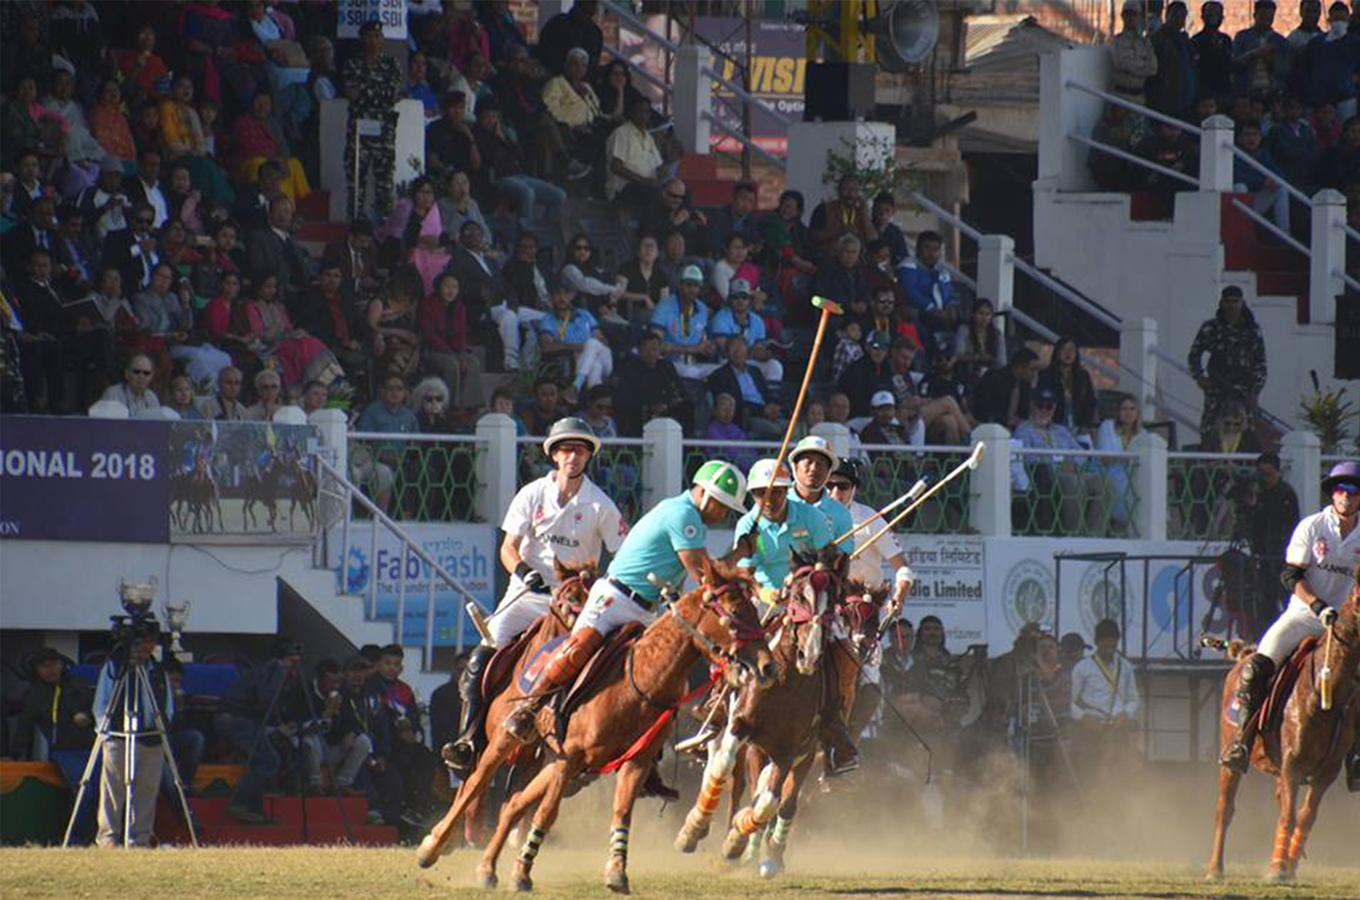 Manipur Polo, Polo International, India B, England, finals, Mary Kom, Imphal Polo Ground, Manipur Sangai, Mapal Kanjeibung, Imphal, Manipur, polo ground, Najma Heptulla